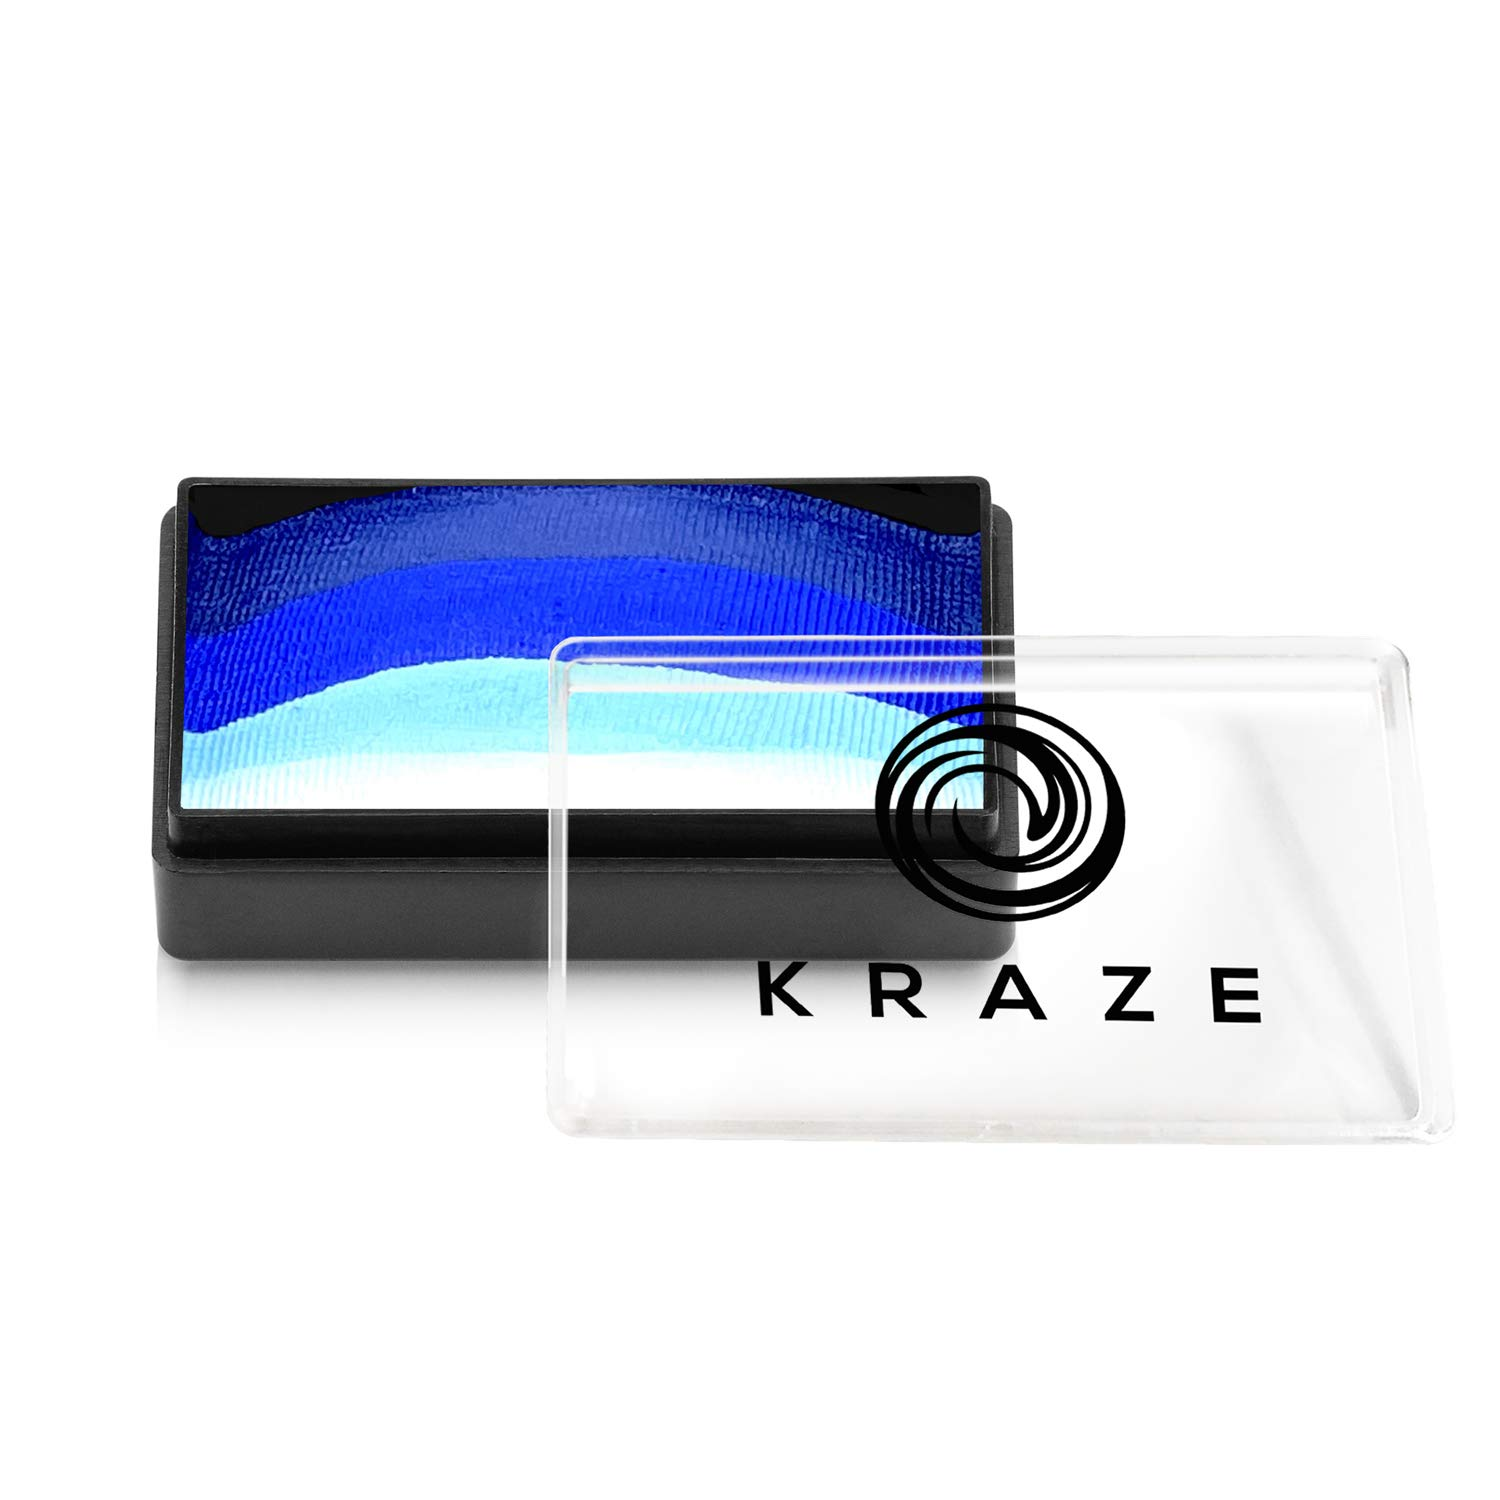 Kraze FX Dome Stroke - Dark Wave (25 gm), Professional 1-Stroke Split Cake, Hypoallergenic, Non-Toxic, Water Activated Face & Body Painting Makeup Supplies for Sensitive Skin, Kid Safe, Adults